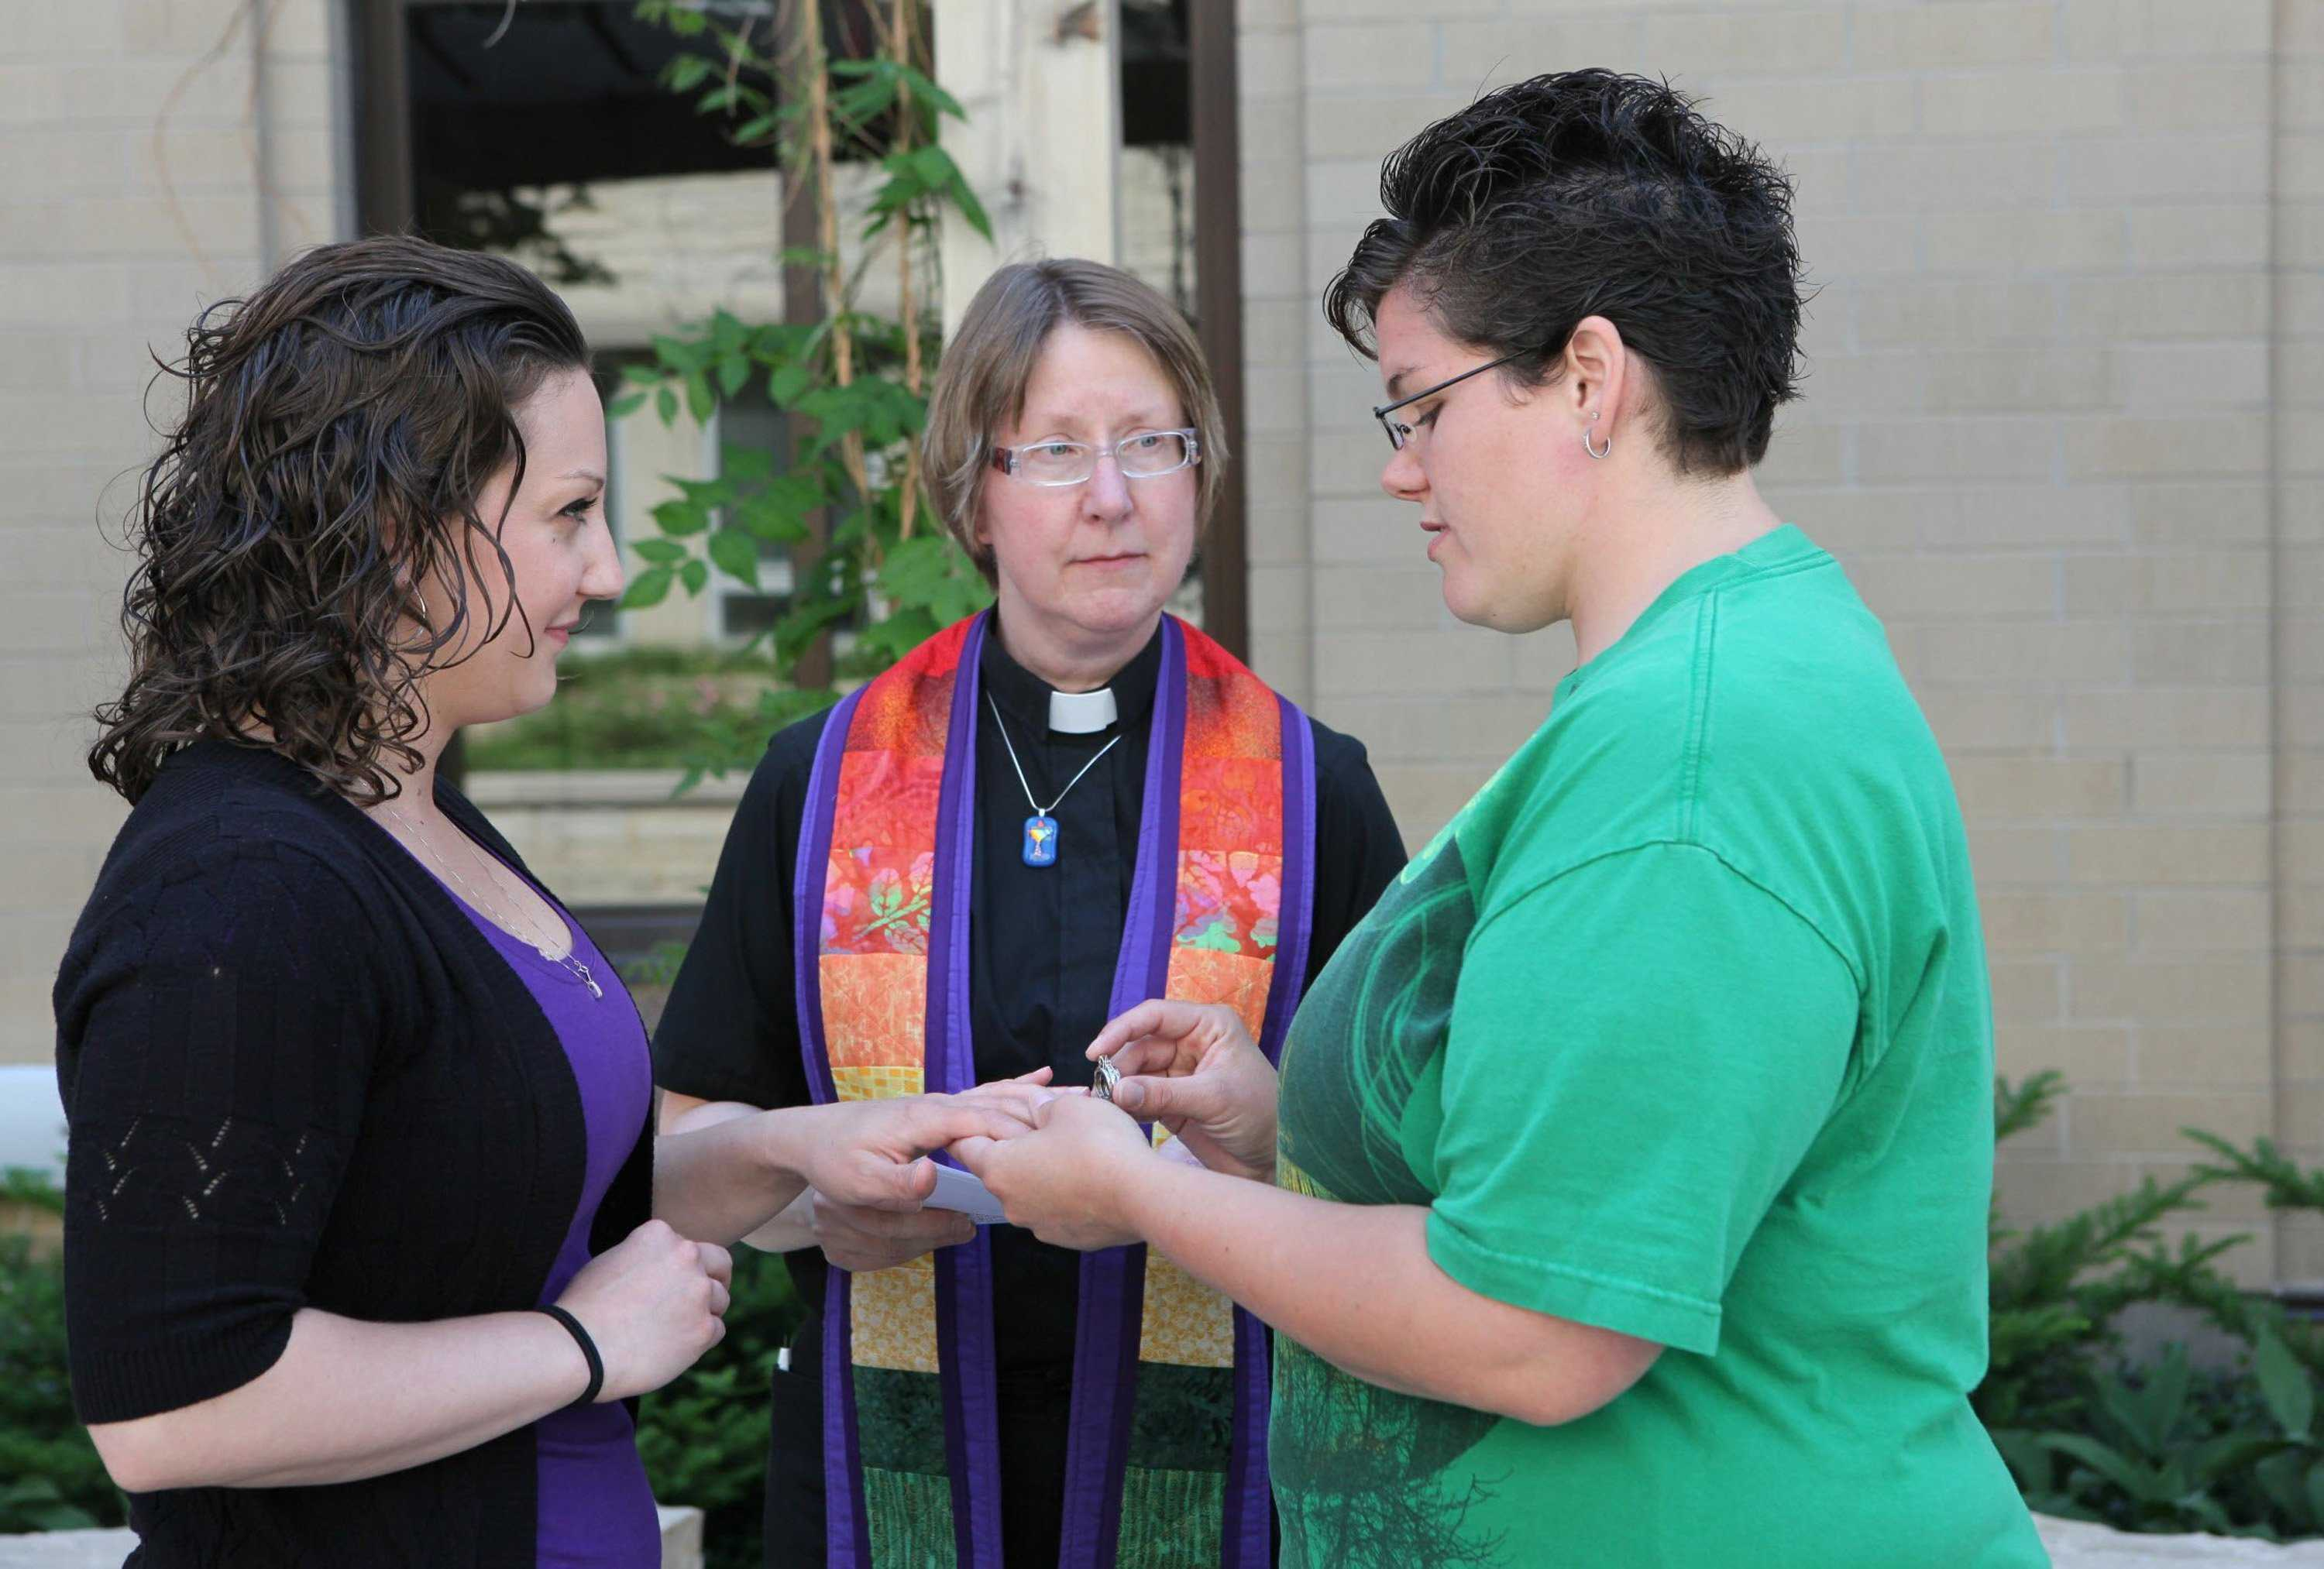 Courtney Beckwith, left, and Amber Beckwith are married by Rev. Lori Hlaban on Monday, June 9, 2014, in Waukesha, Wisc. The couple had their names changed legally after an earlier commitment ceremony.